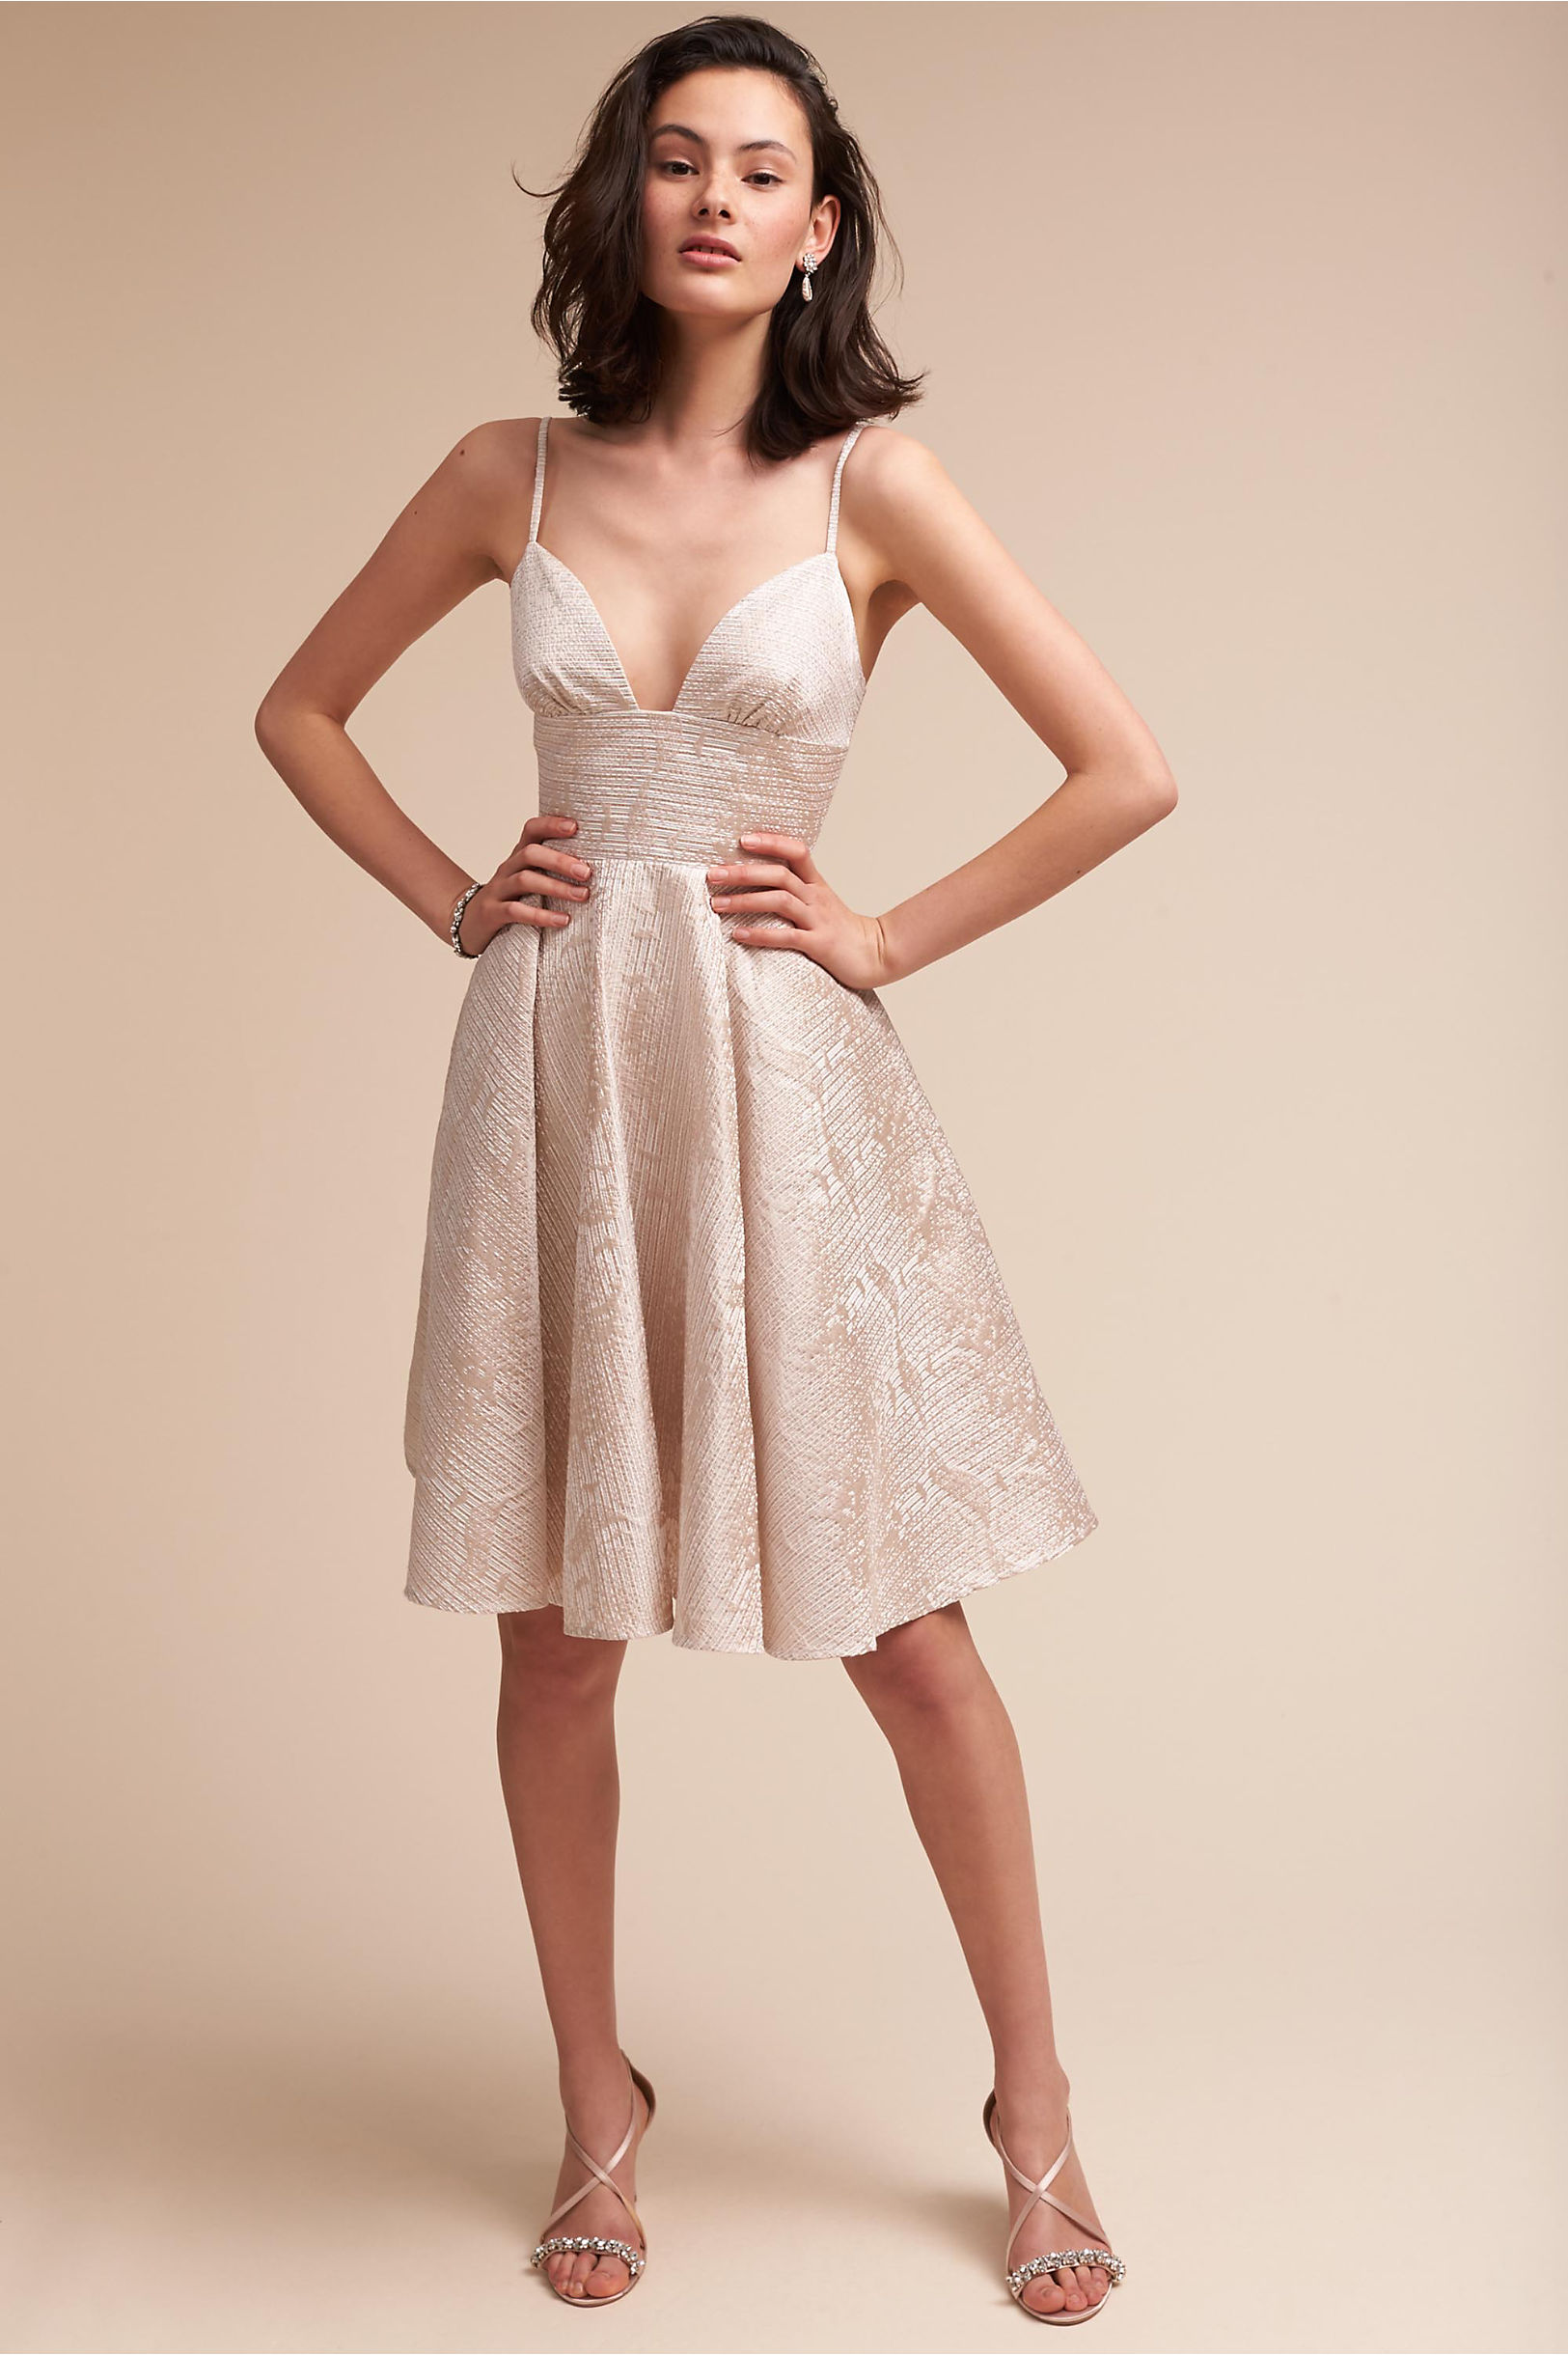 Winchester Dress in Sale | BHLDN